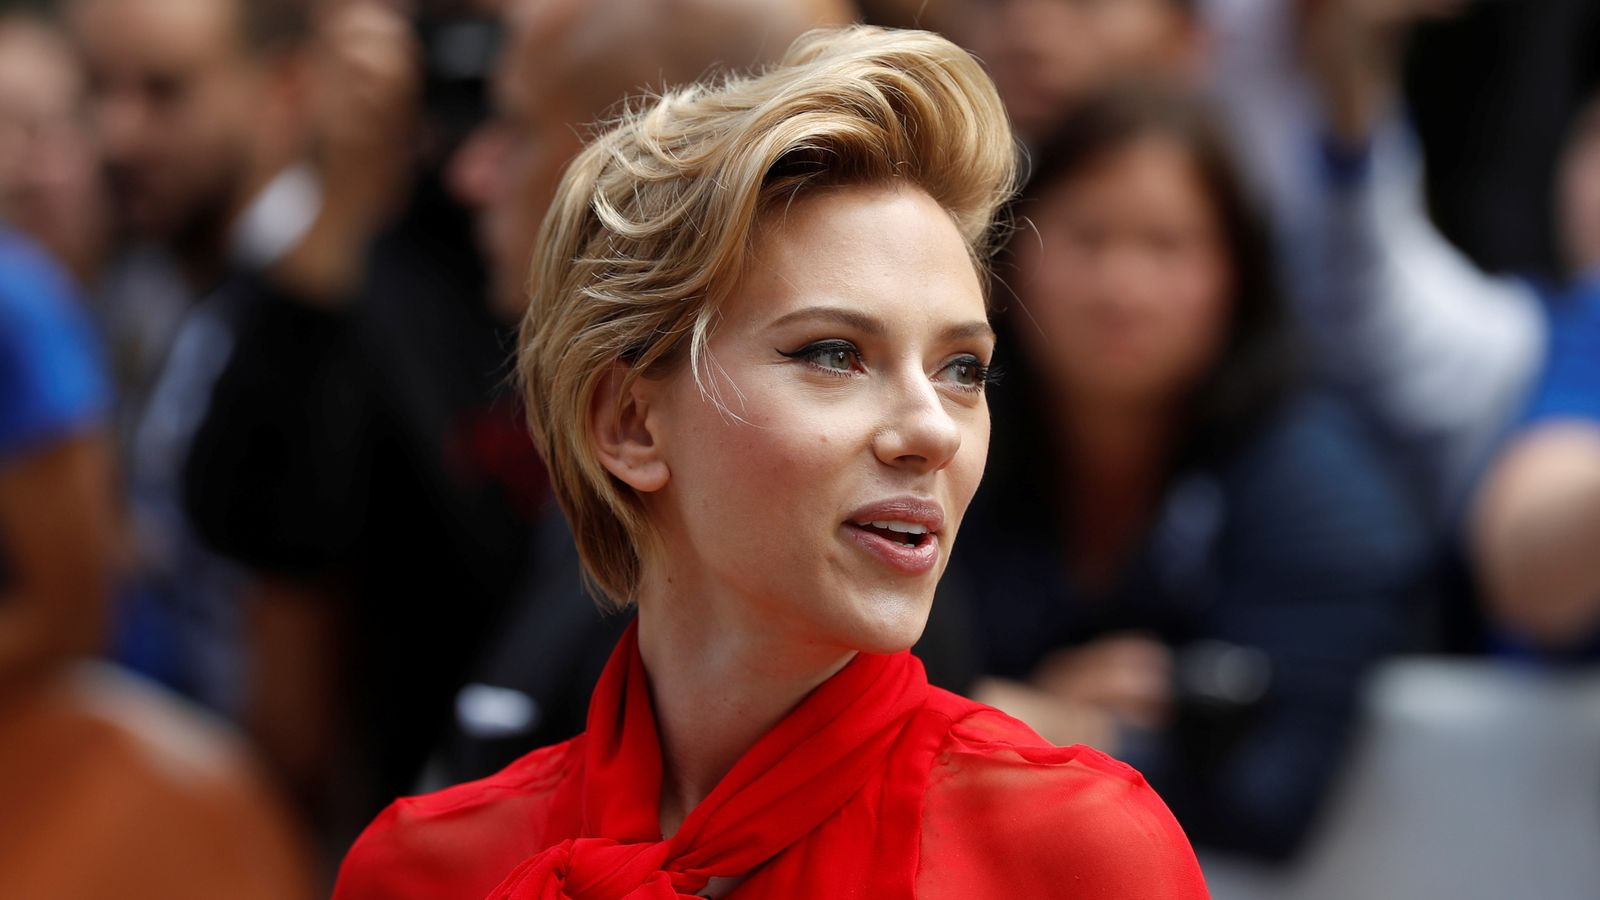 Johansson quits transgender role after backlash